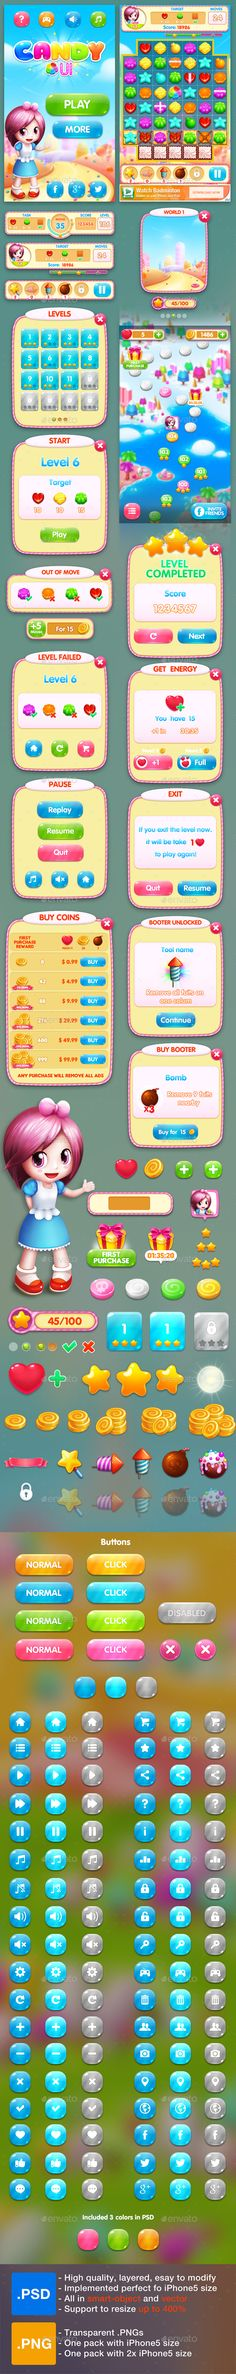 Sweety UI - User Interfaces Game Assets | Download: https://graphicriver.net/item/sweety-ui/19036399?ref=sinzo